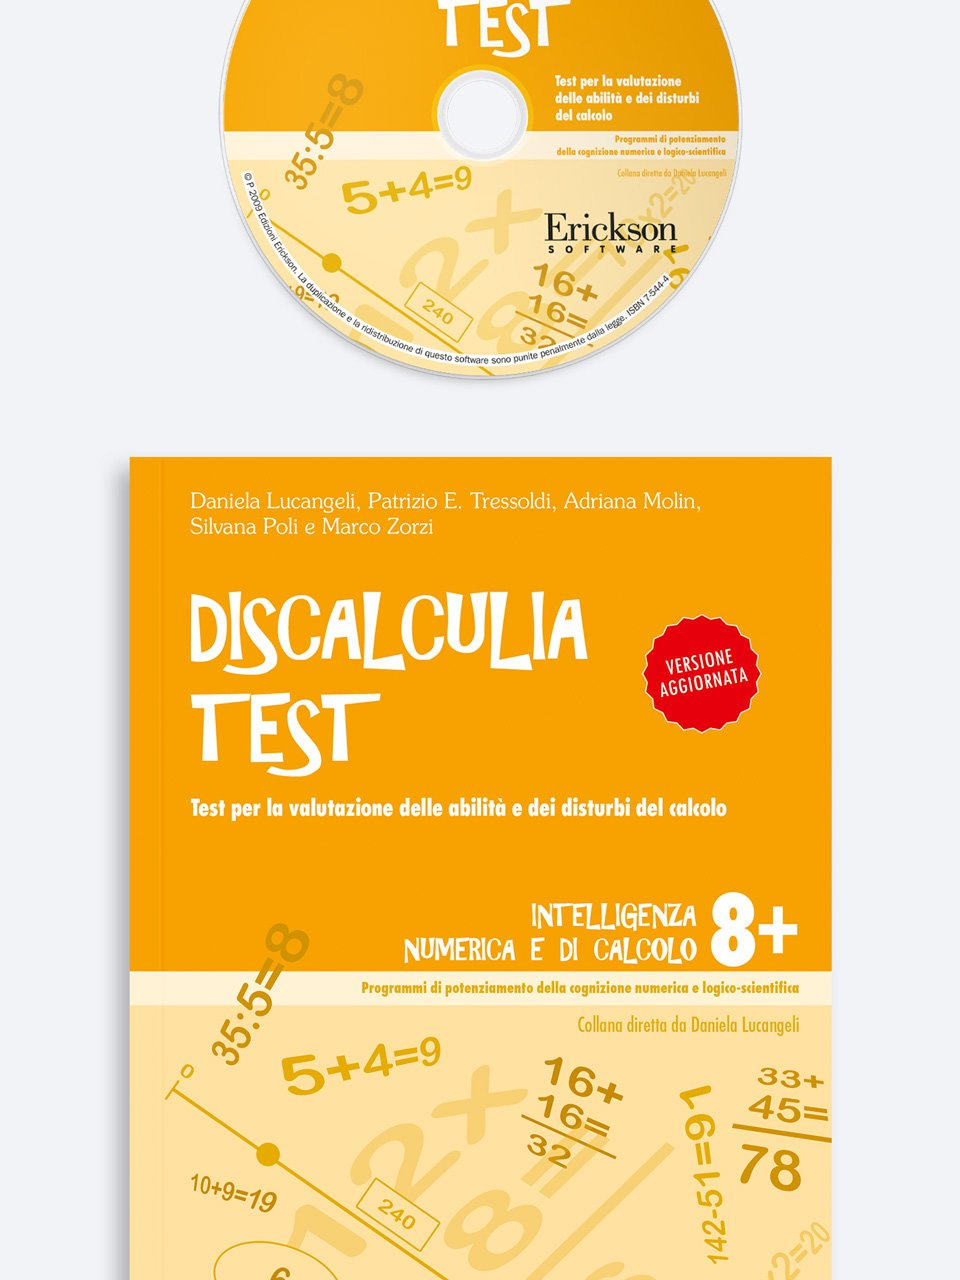 Discalculia test - App e software - Erickson